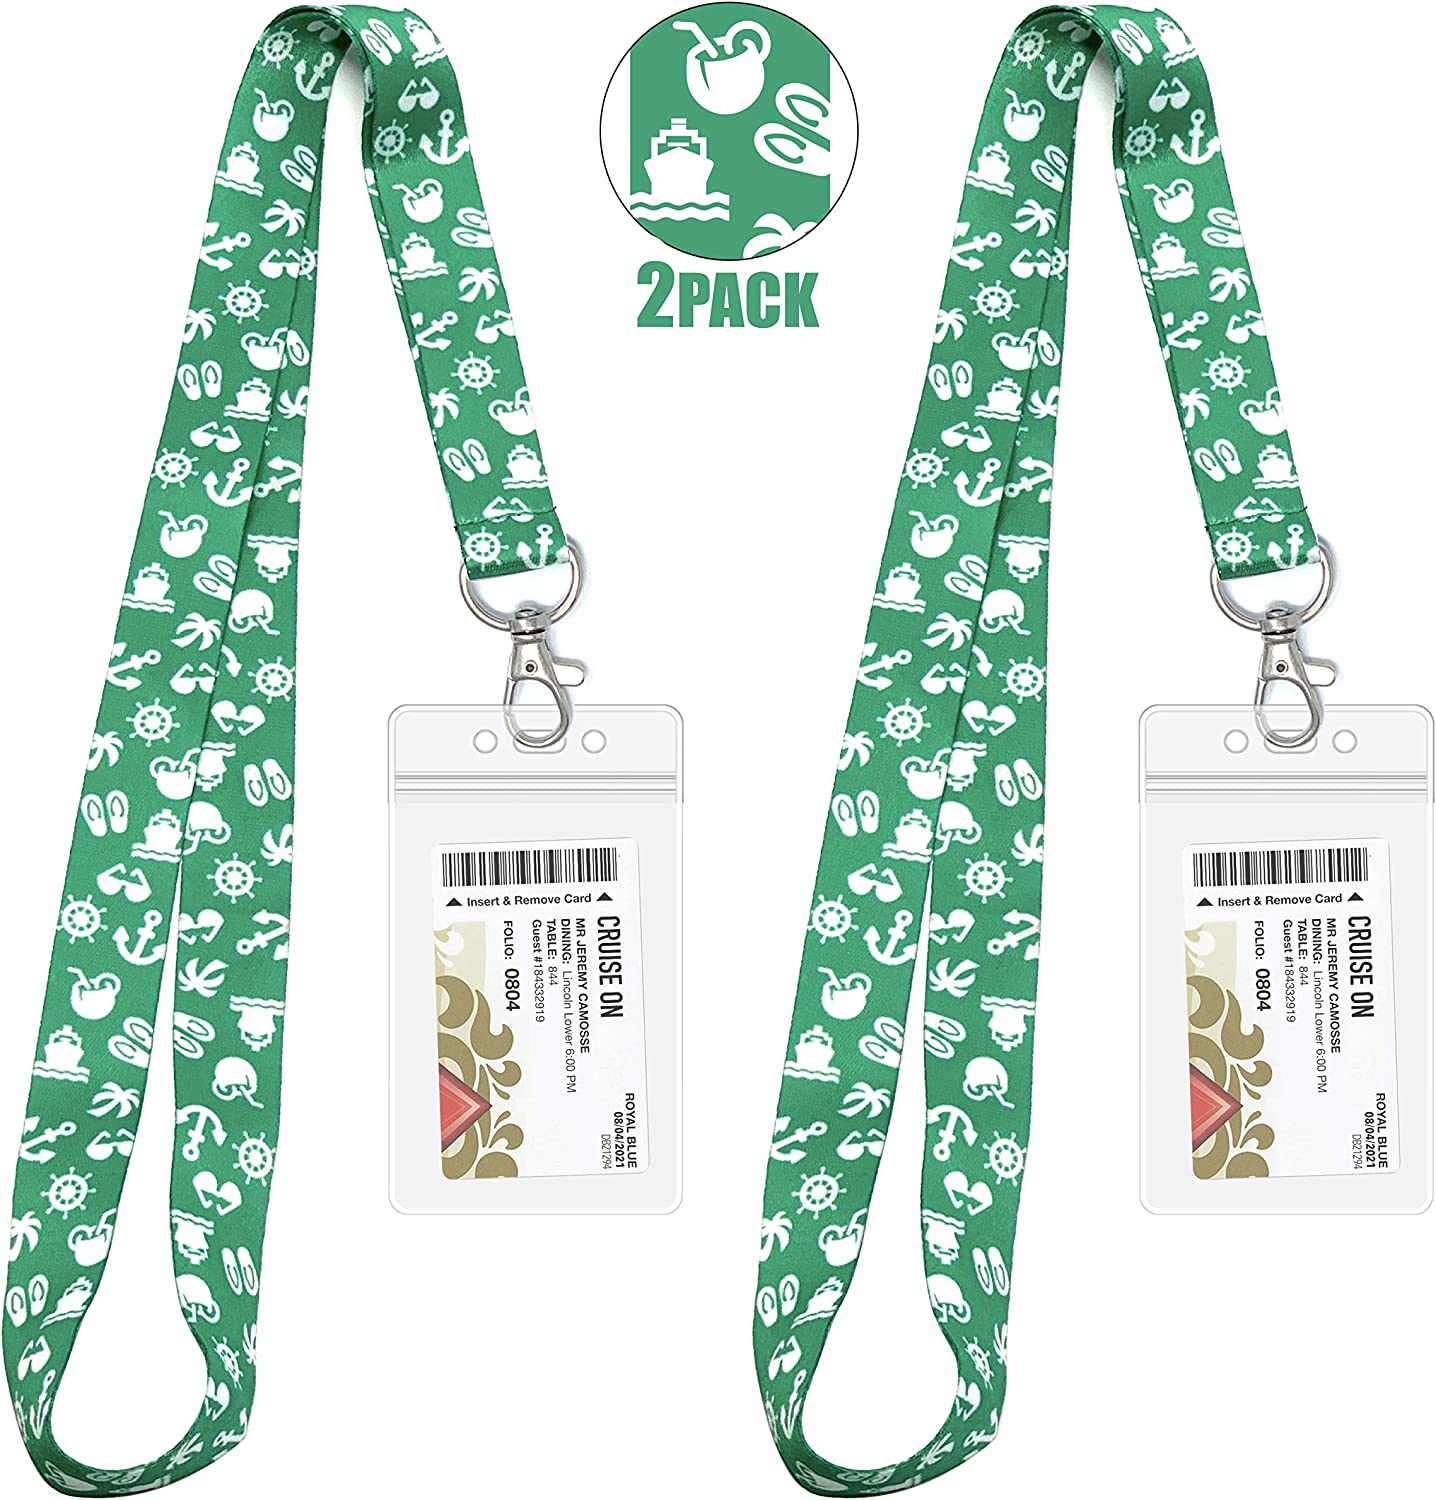 Lanyards for Cruise Key Cards [2 Pack] with Waterproof Key Cruise Card Holder (Green)